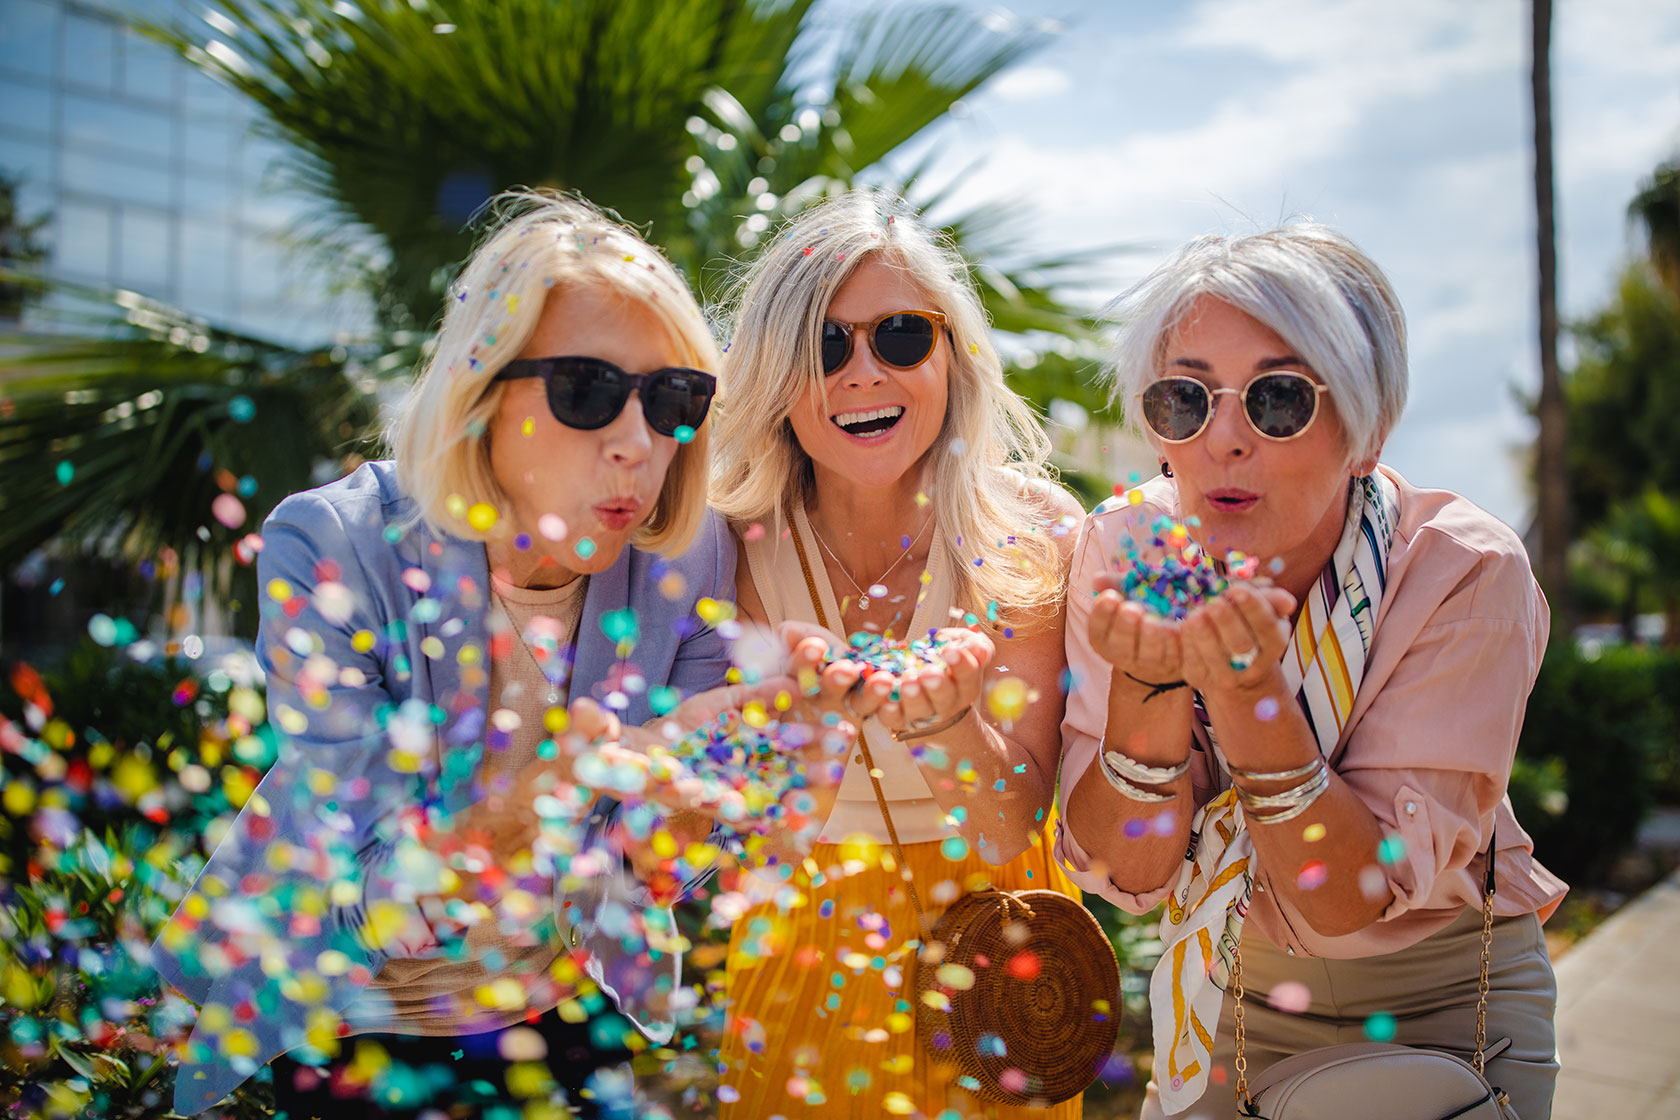 Three older women in sunglasses blowing confetti